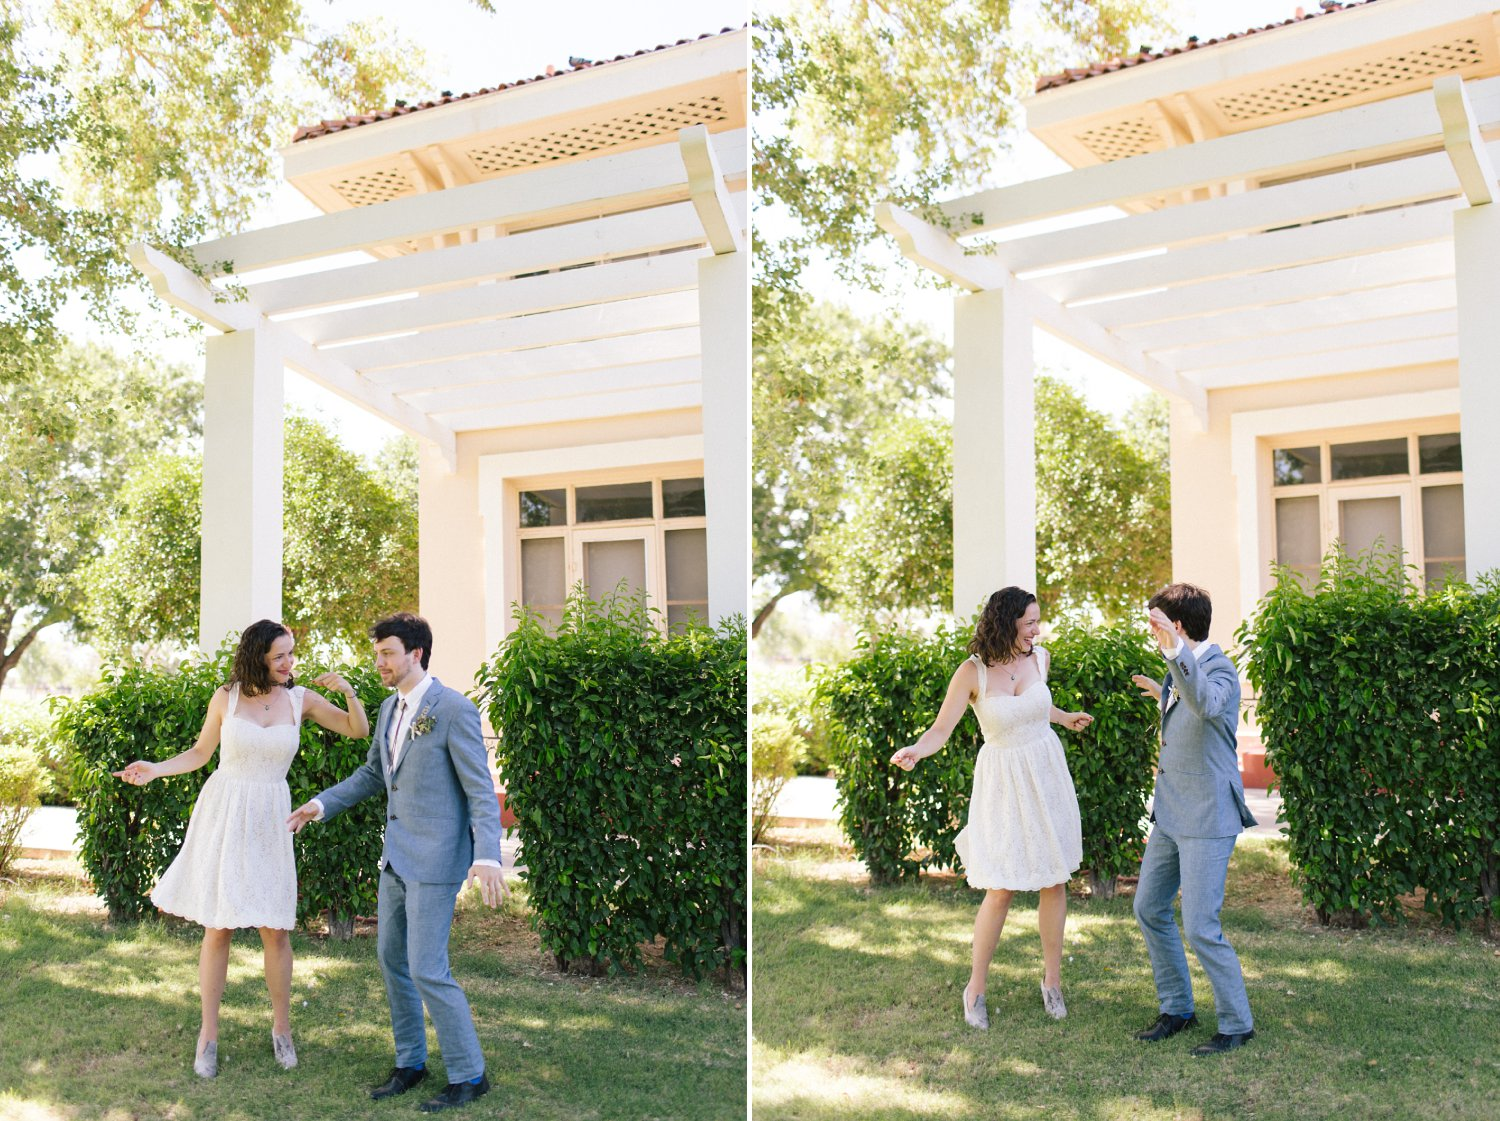 goofy fun bride & groom photos Phoenix moment-driven documentary wedding photographer